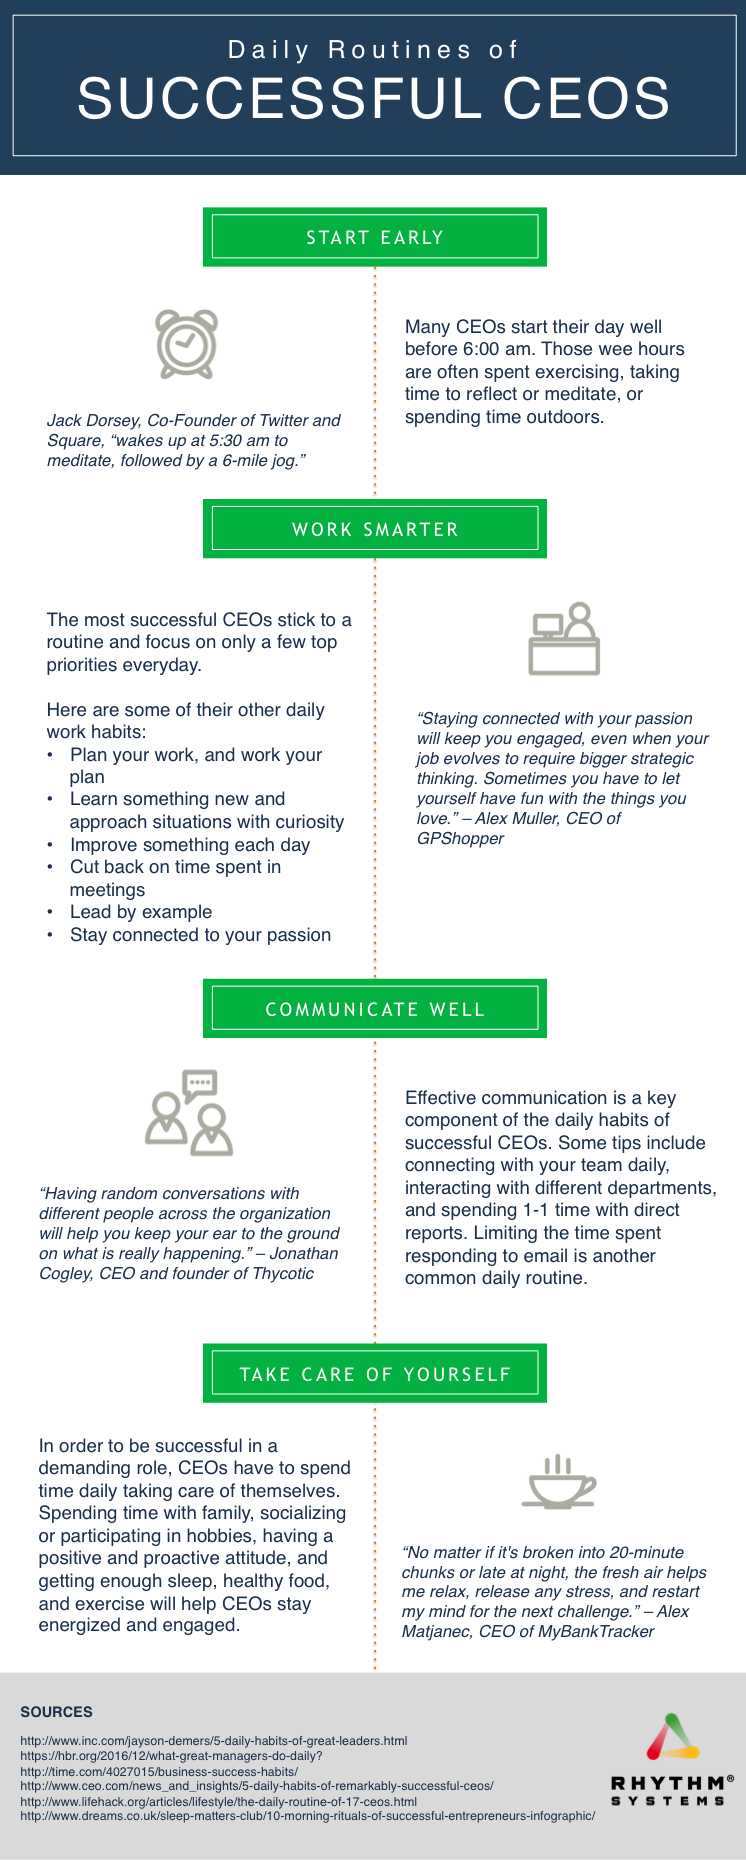 https://www.rhythmsystems.com/hs-fs/hubfs/16_RS_For_Blogs/CEO%20Routine%20Infographic.png?t=1518728995496&width=1119&height=2790&name=CEO%20Routine%20Infographic.png